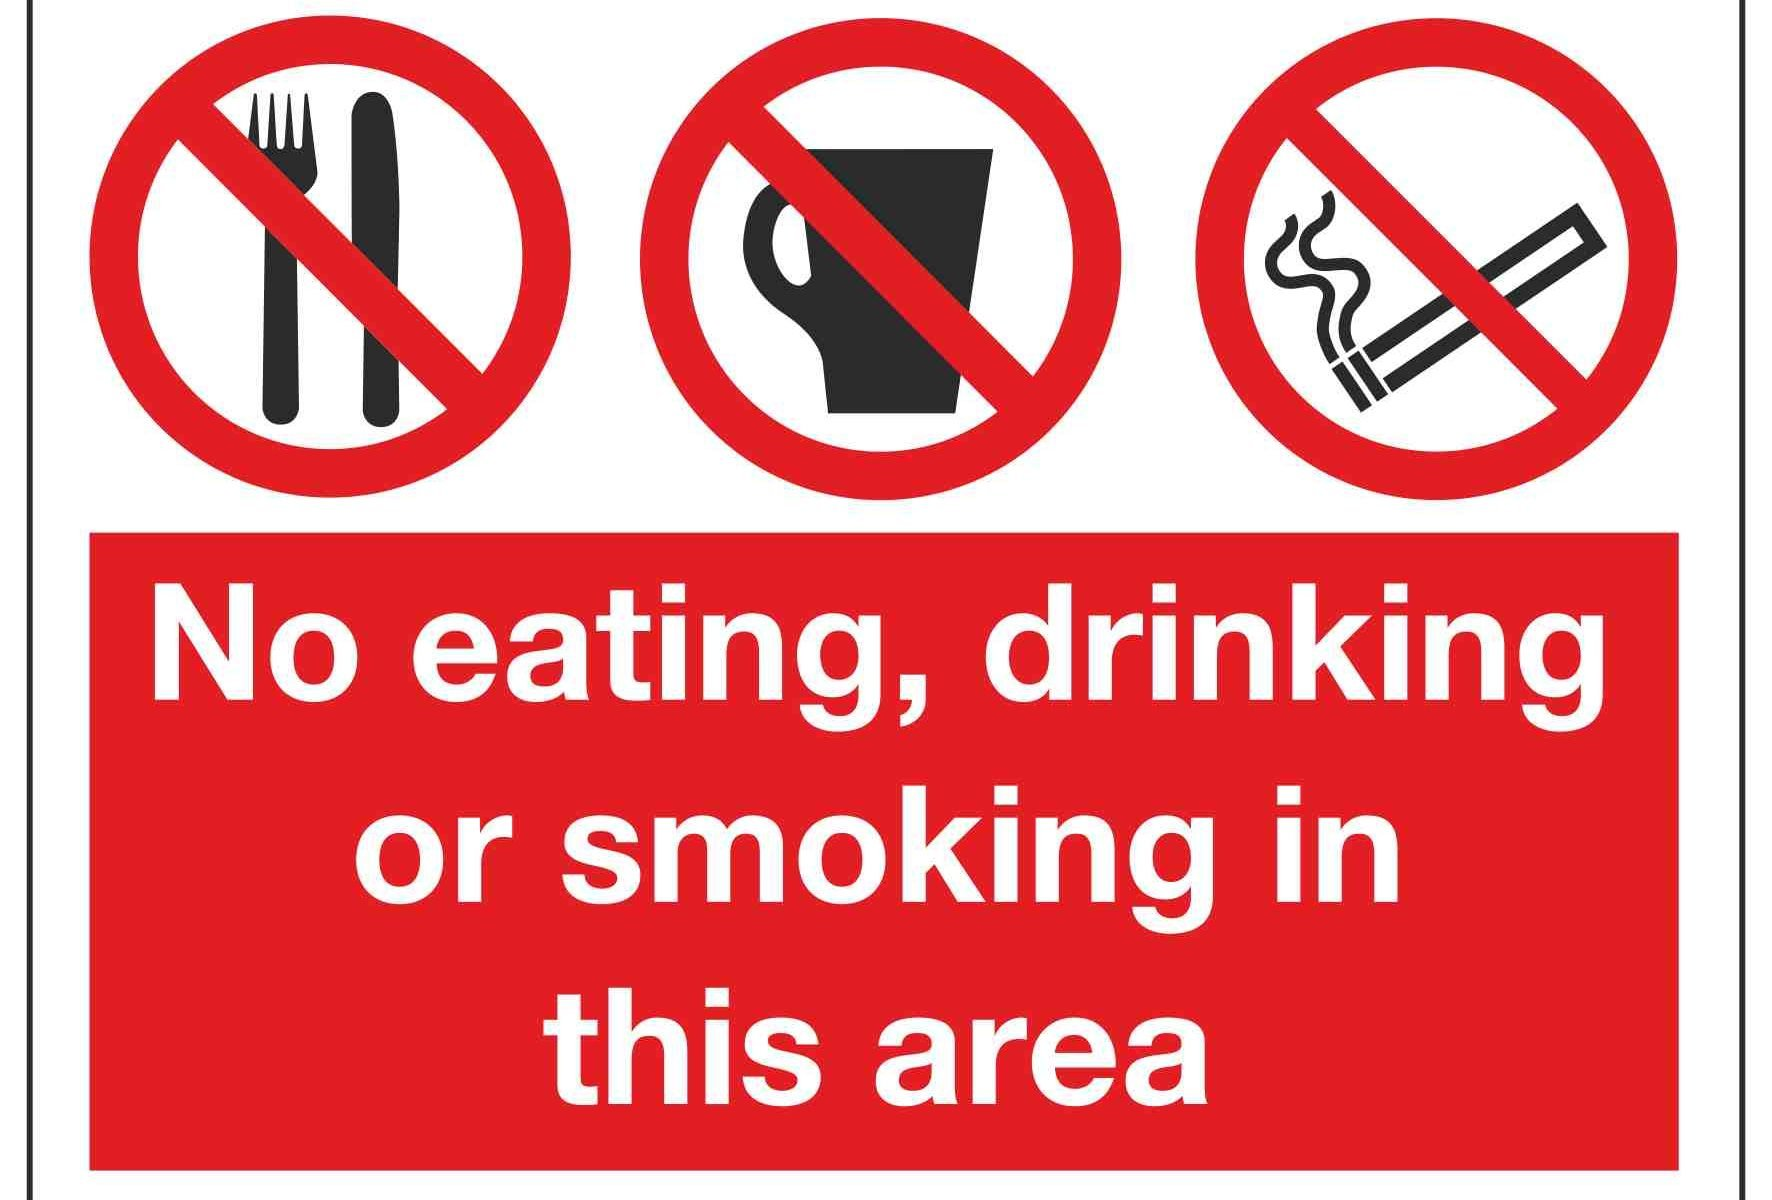 No eating, drinking or smoking in this area